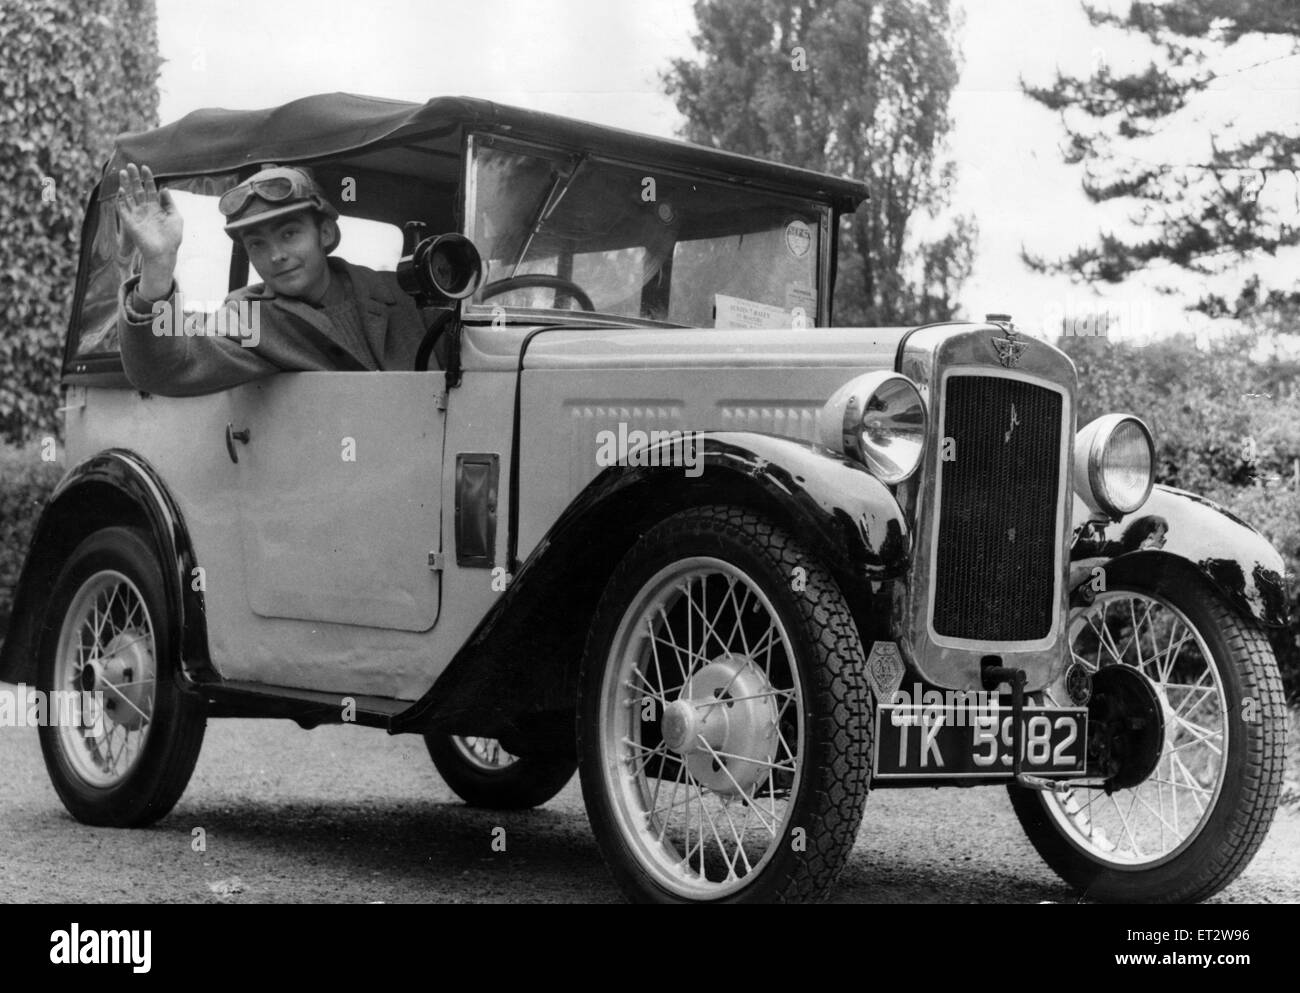 1930 Austin Seven 'Chummy', owned by Adrian Humphreys of Middlesbrough, 28th June 1967. - Stock Image